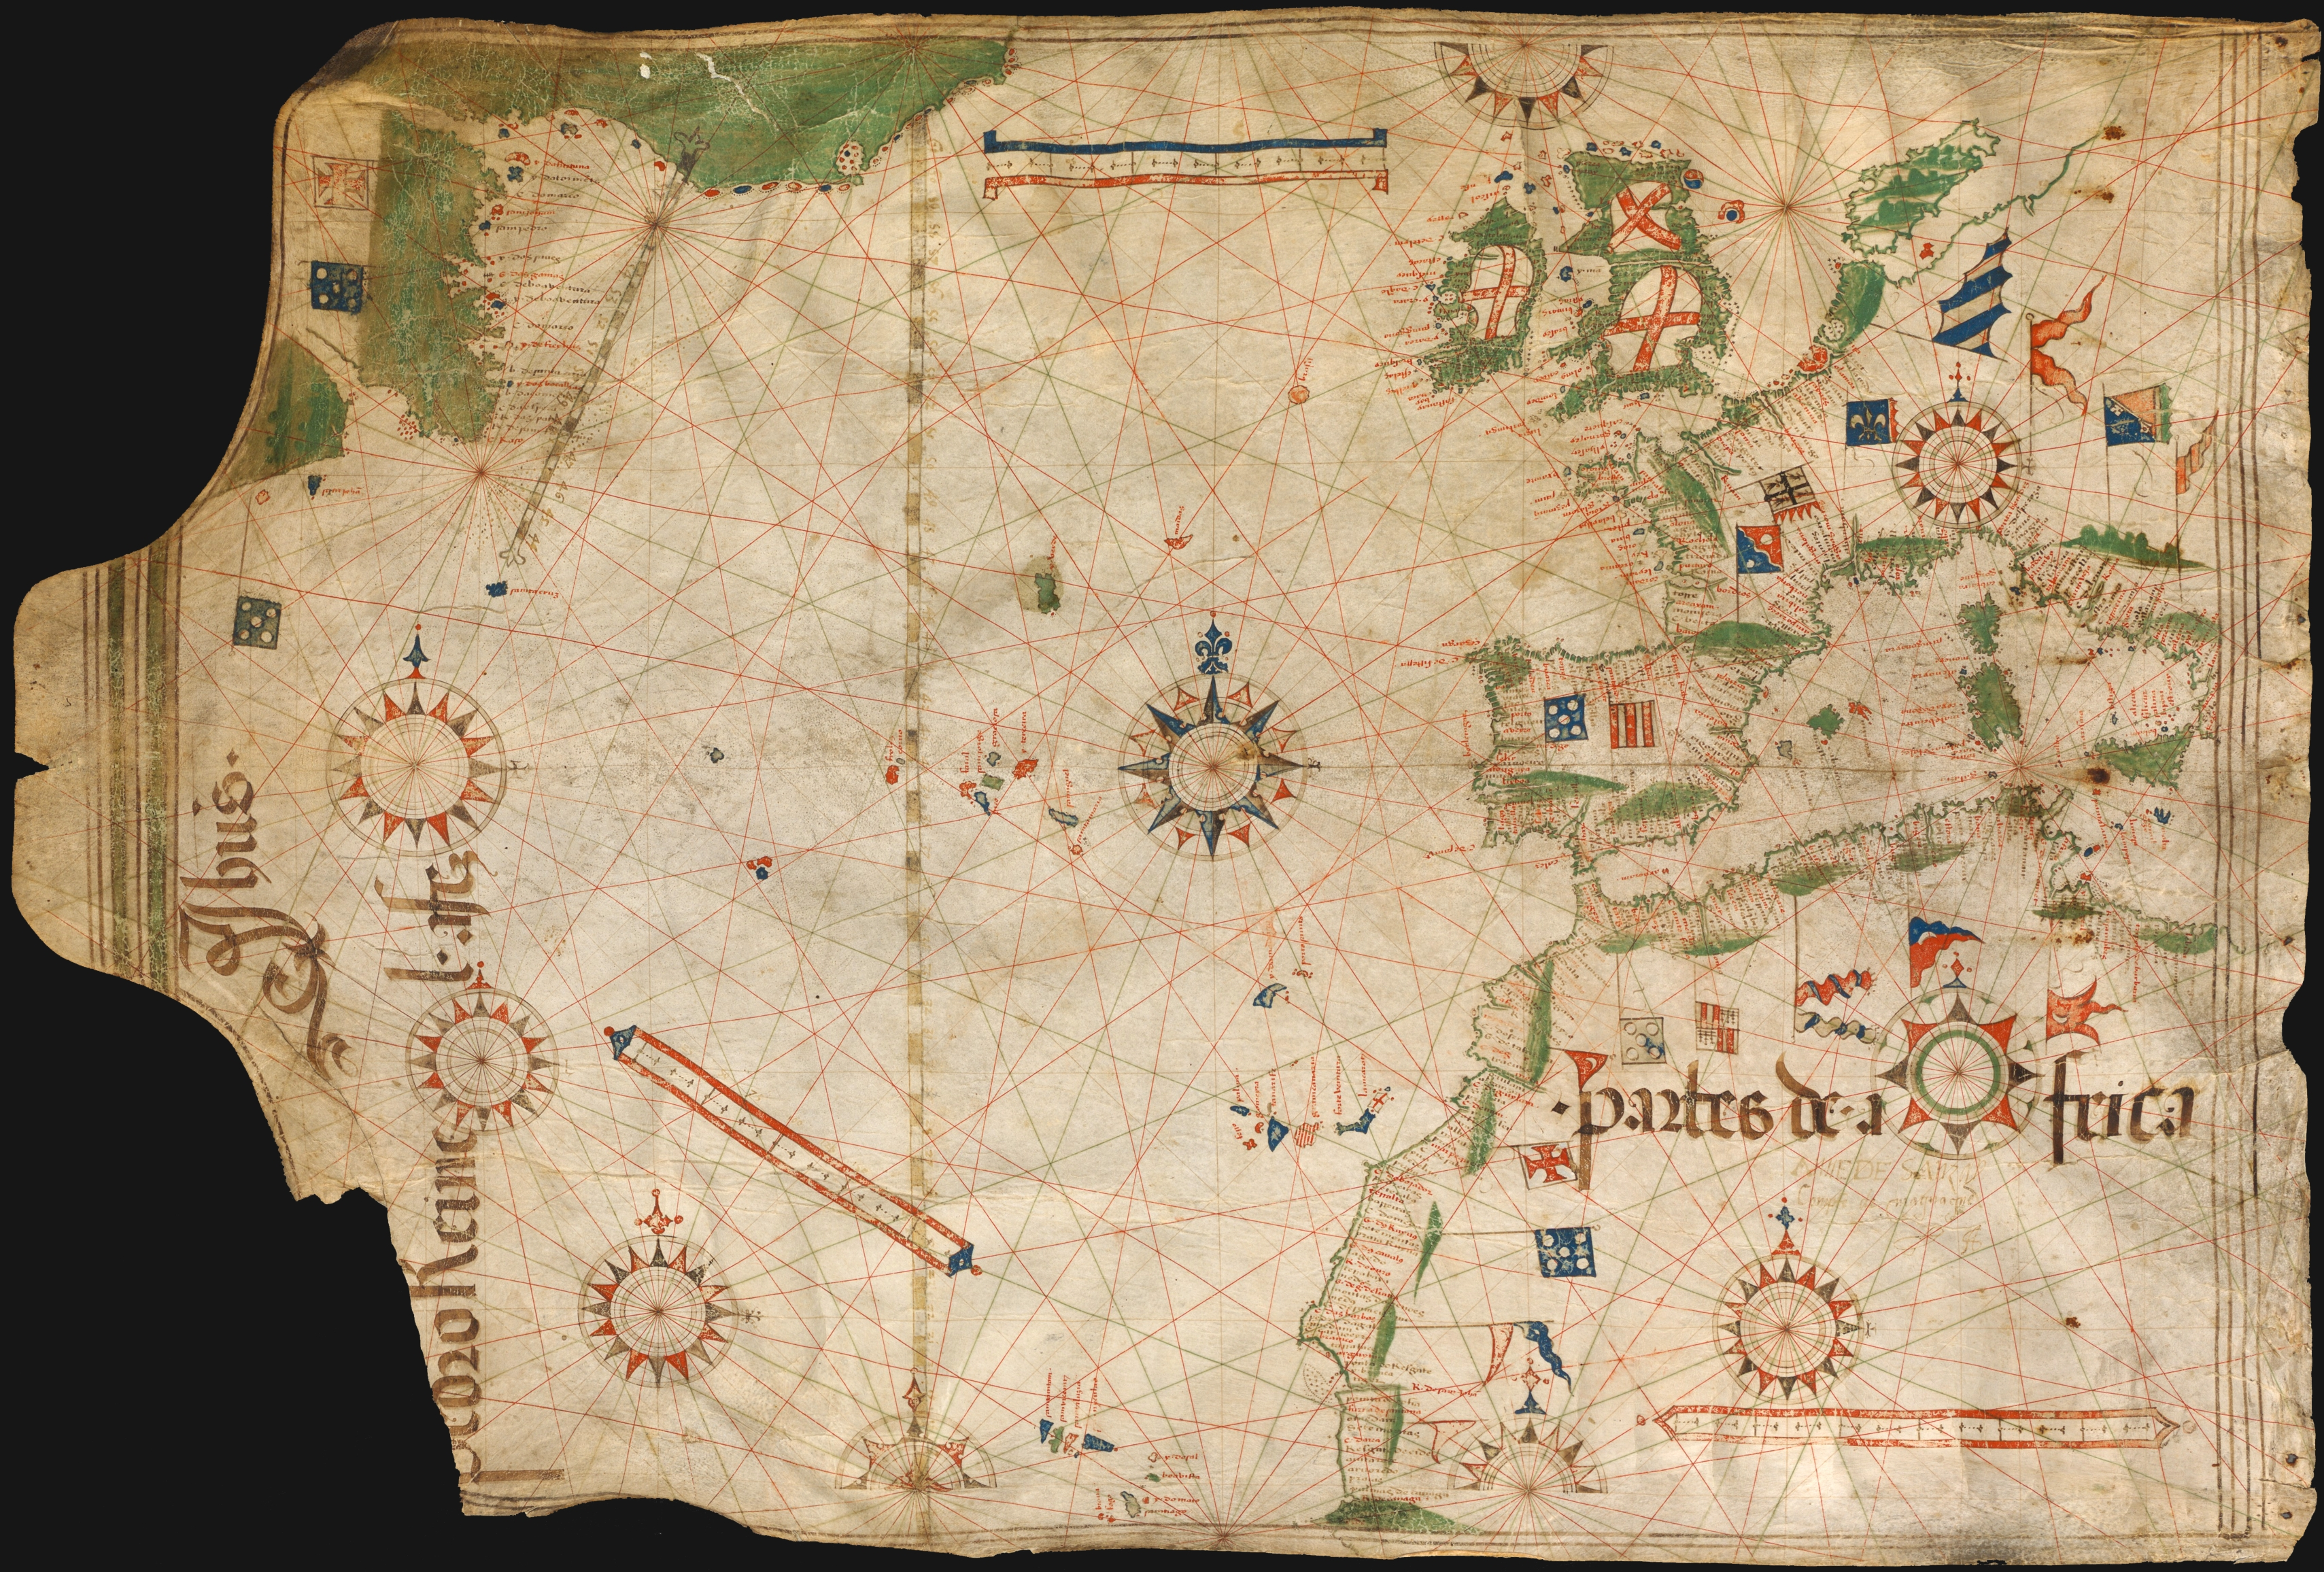 A Portuguese chart of the Atlantic dated 1504. Image uploaded by Joaquim Gaspar to Wikimedia Commons.